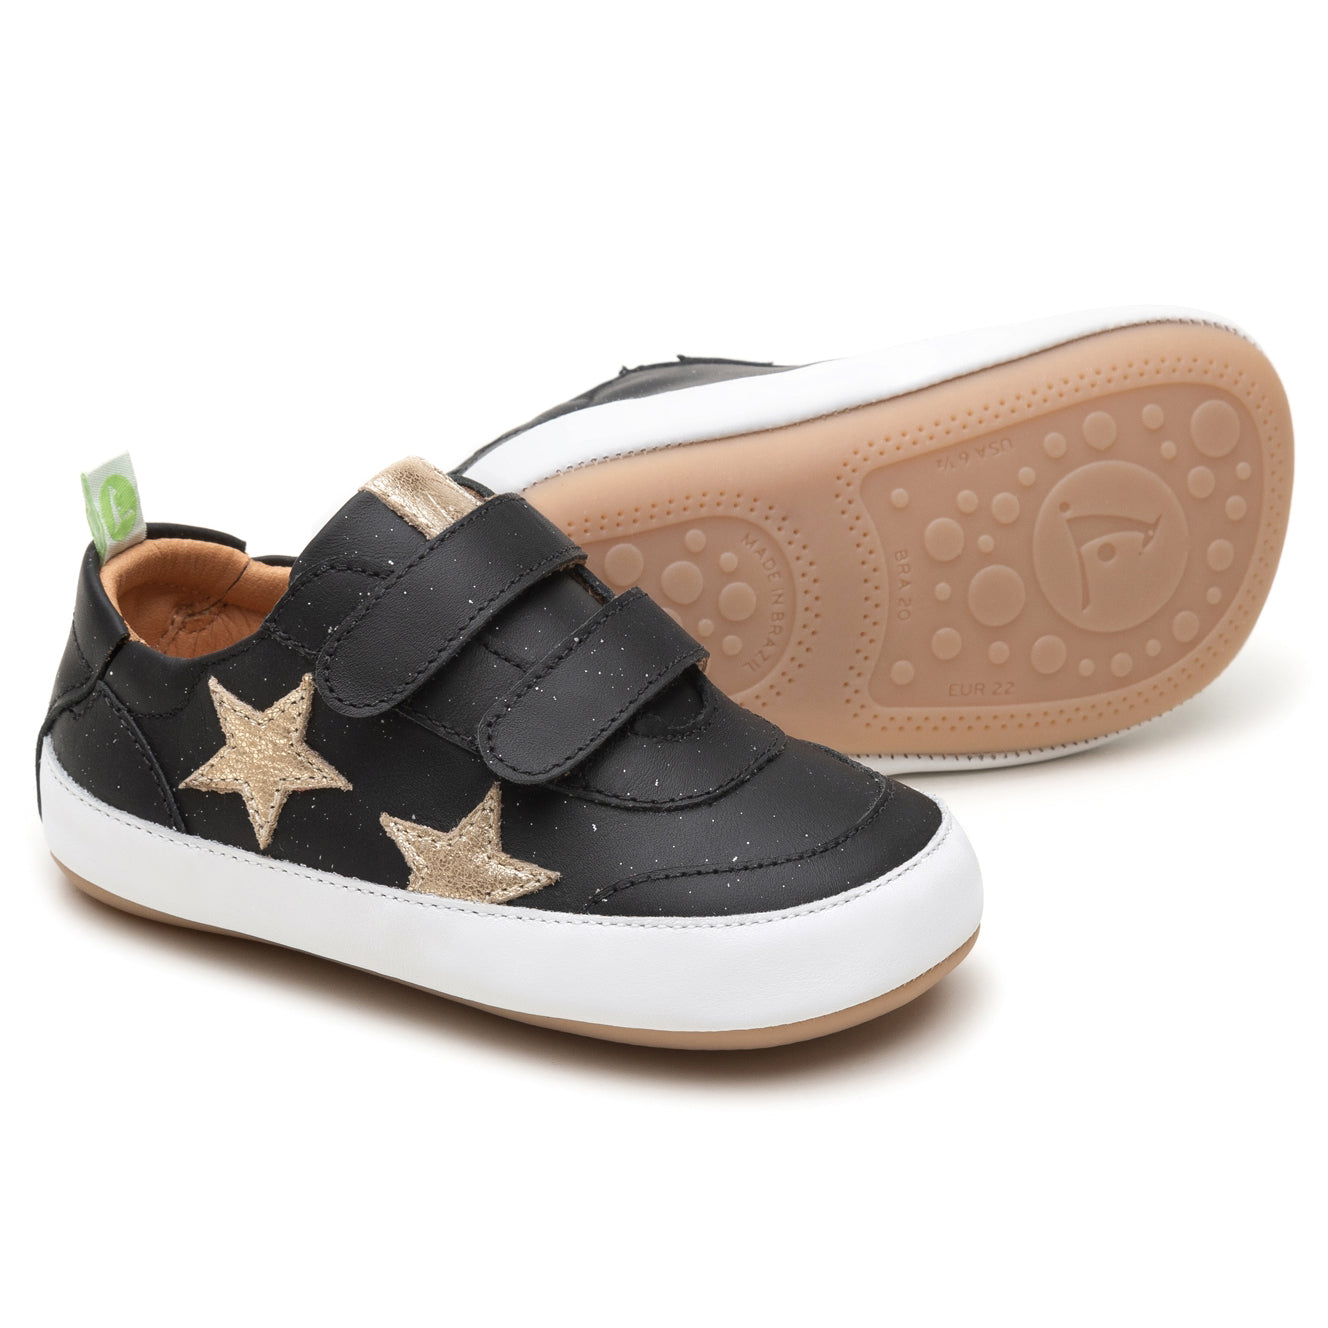 tip toey joey starry sneakers